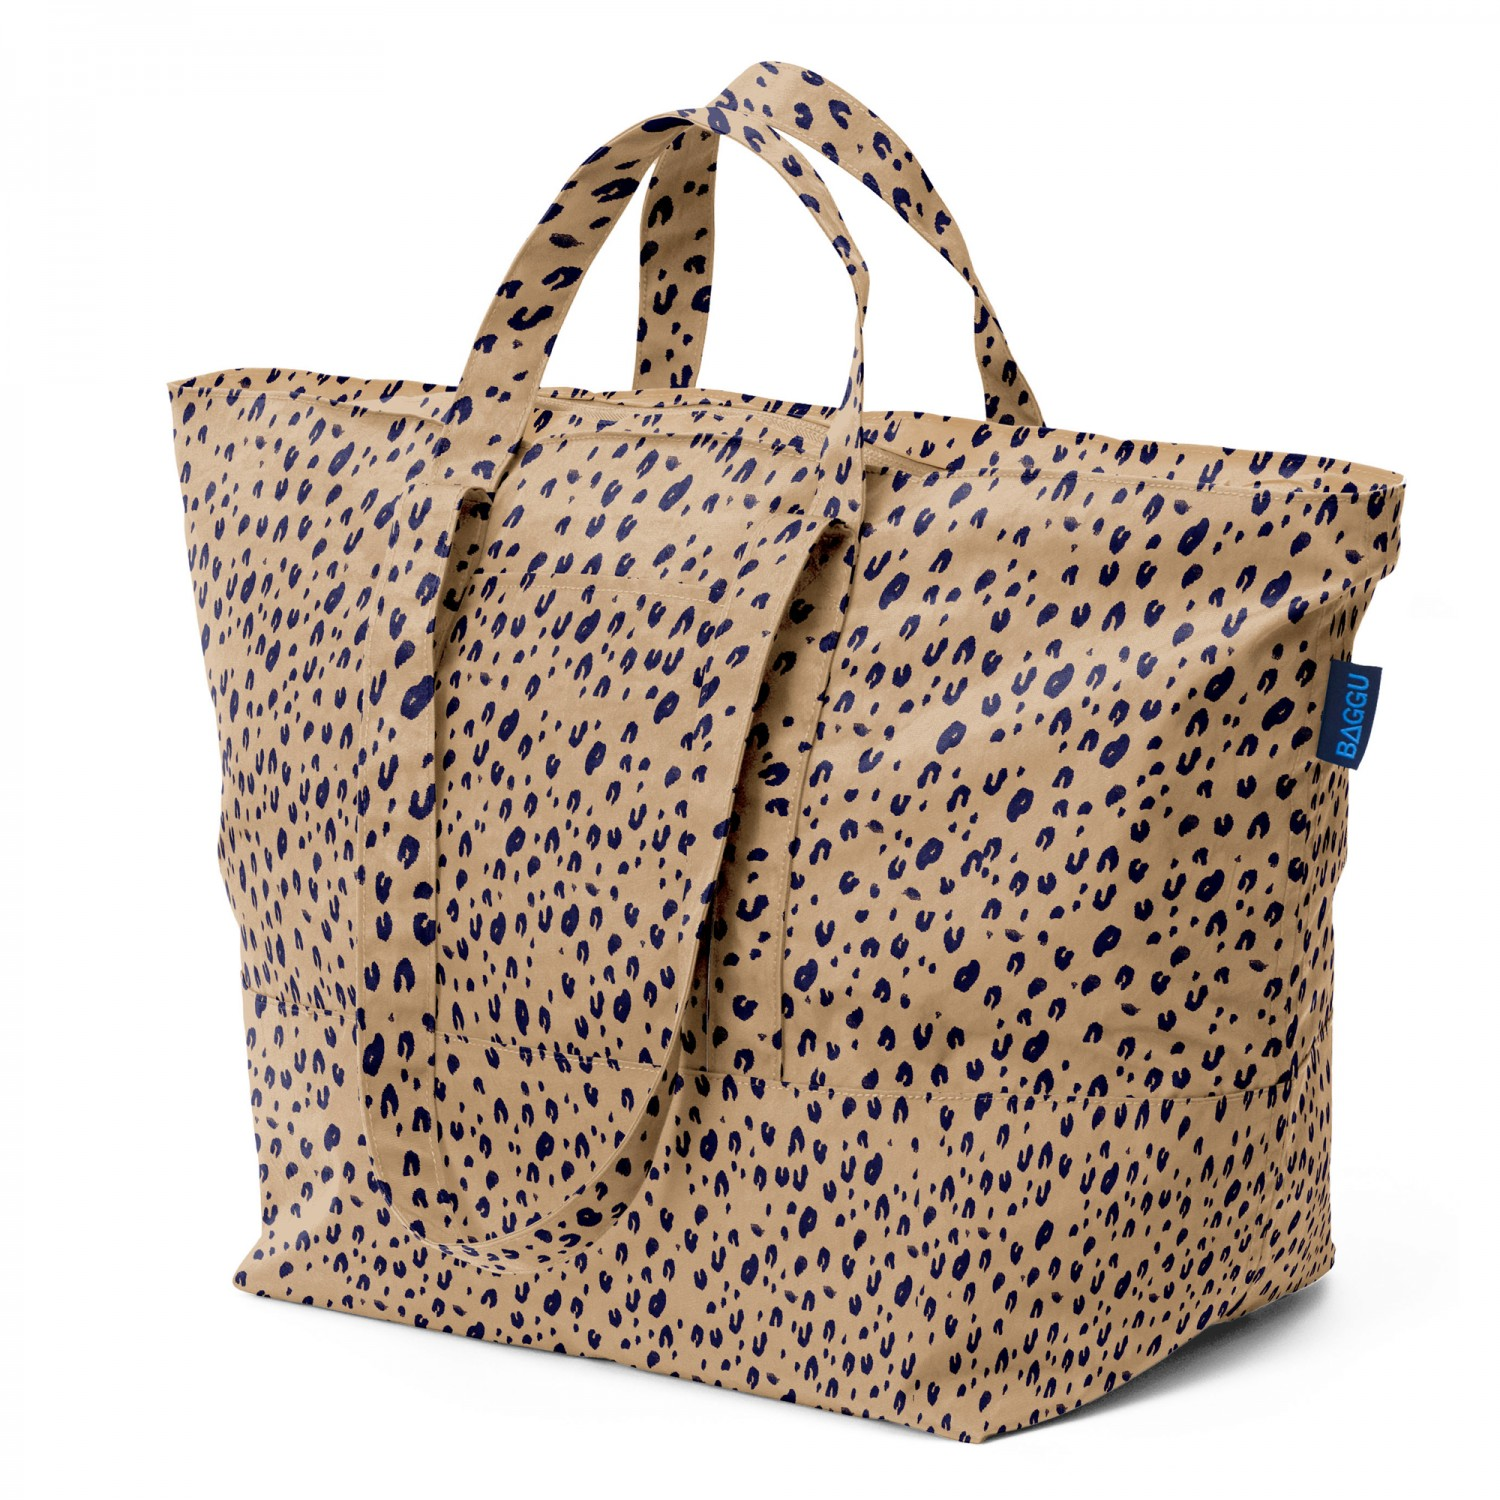 No more Plastic Bags - Stylish Shopper & Tote Bags | A Stylish ...